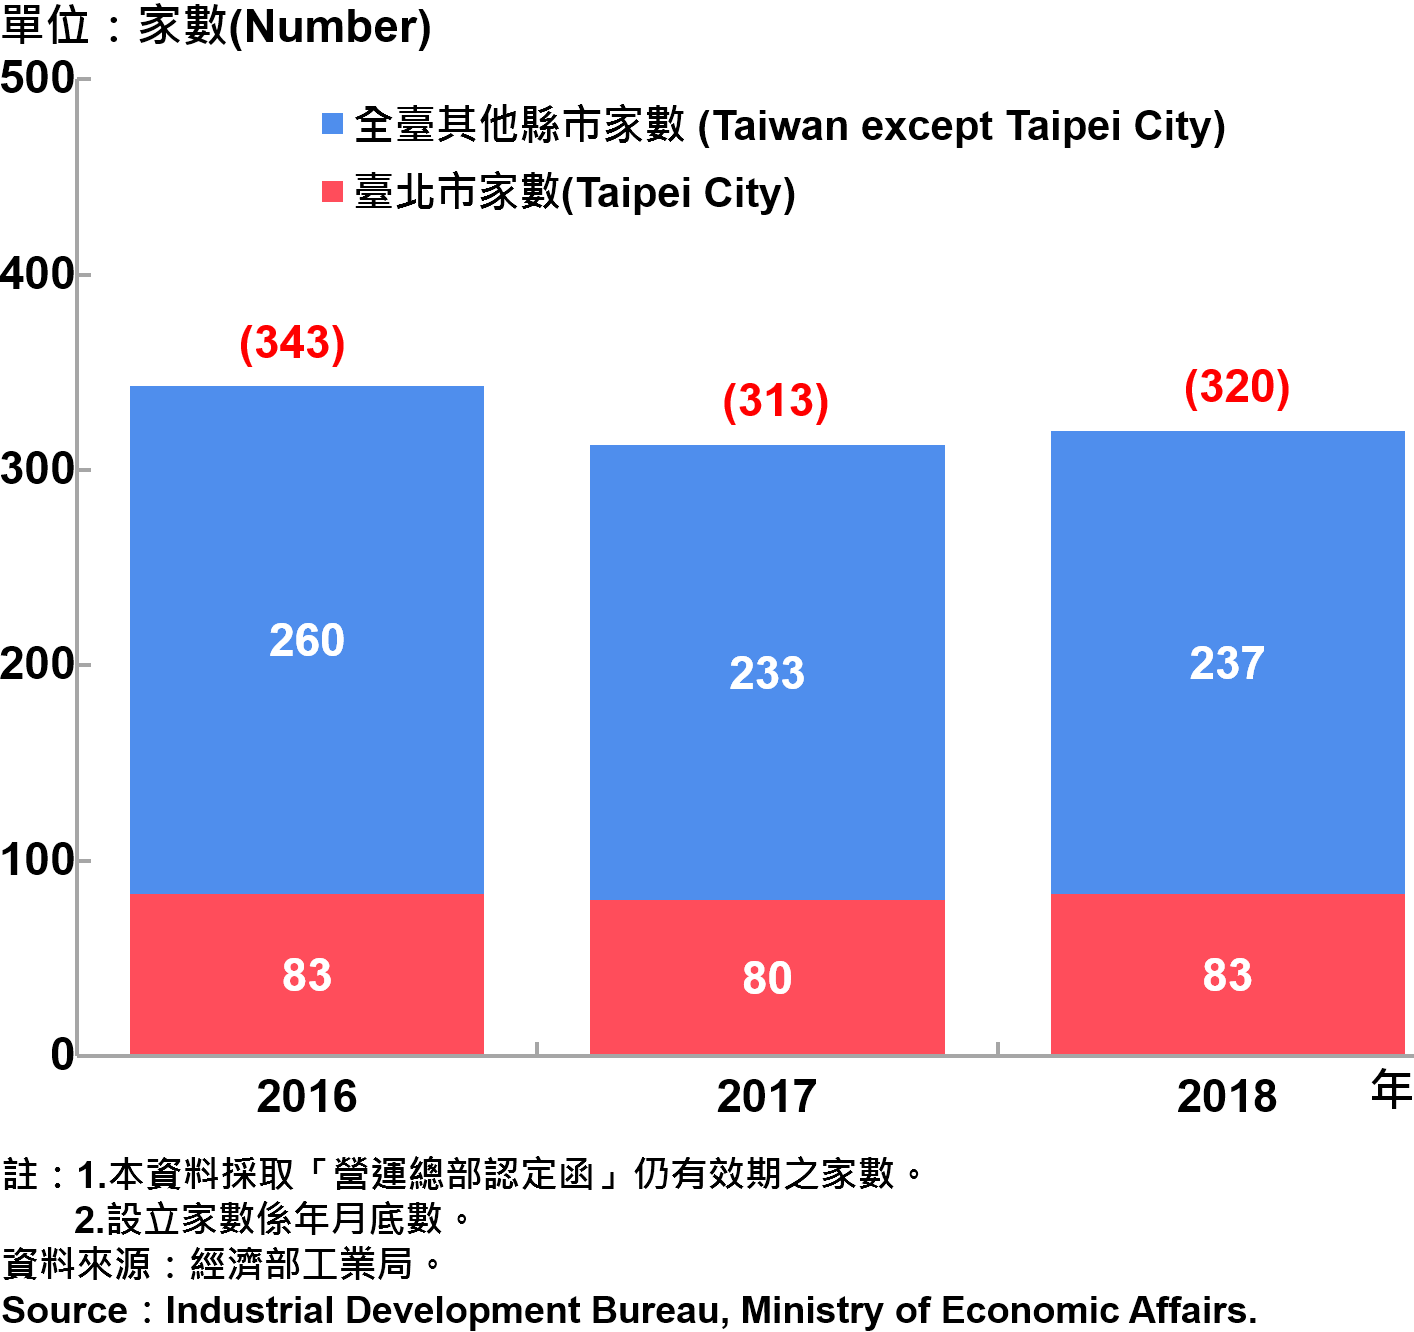 臺北市企業營運總部之設立家數—2018 Number of Established Enterprise Business Headquarters in Taipei City—2018